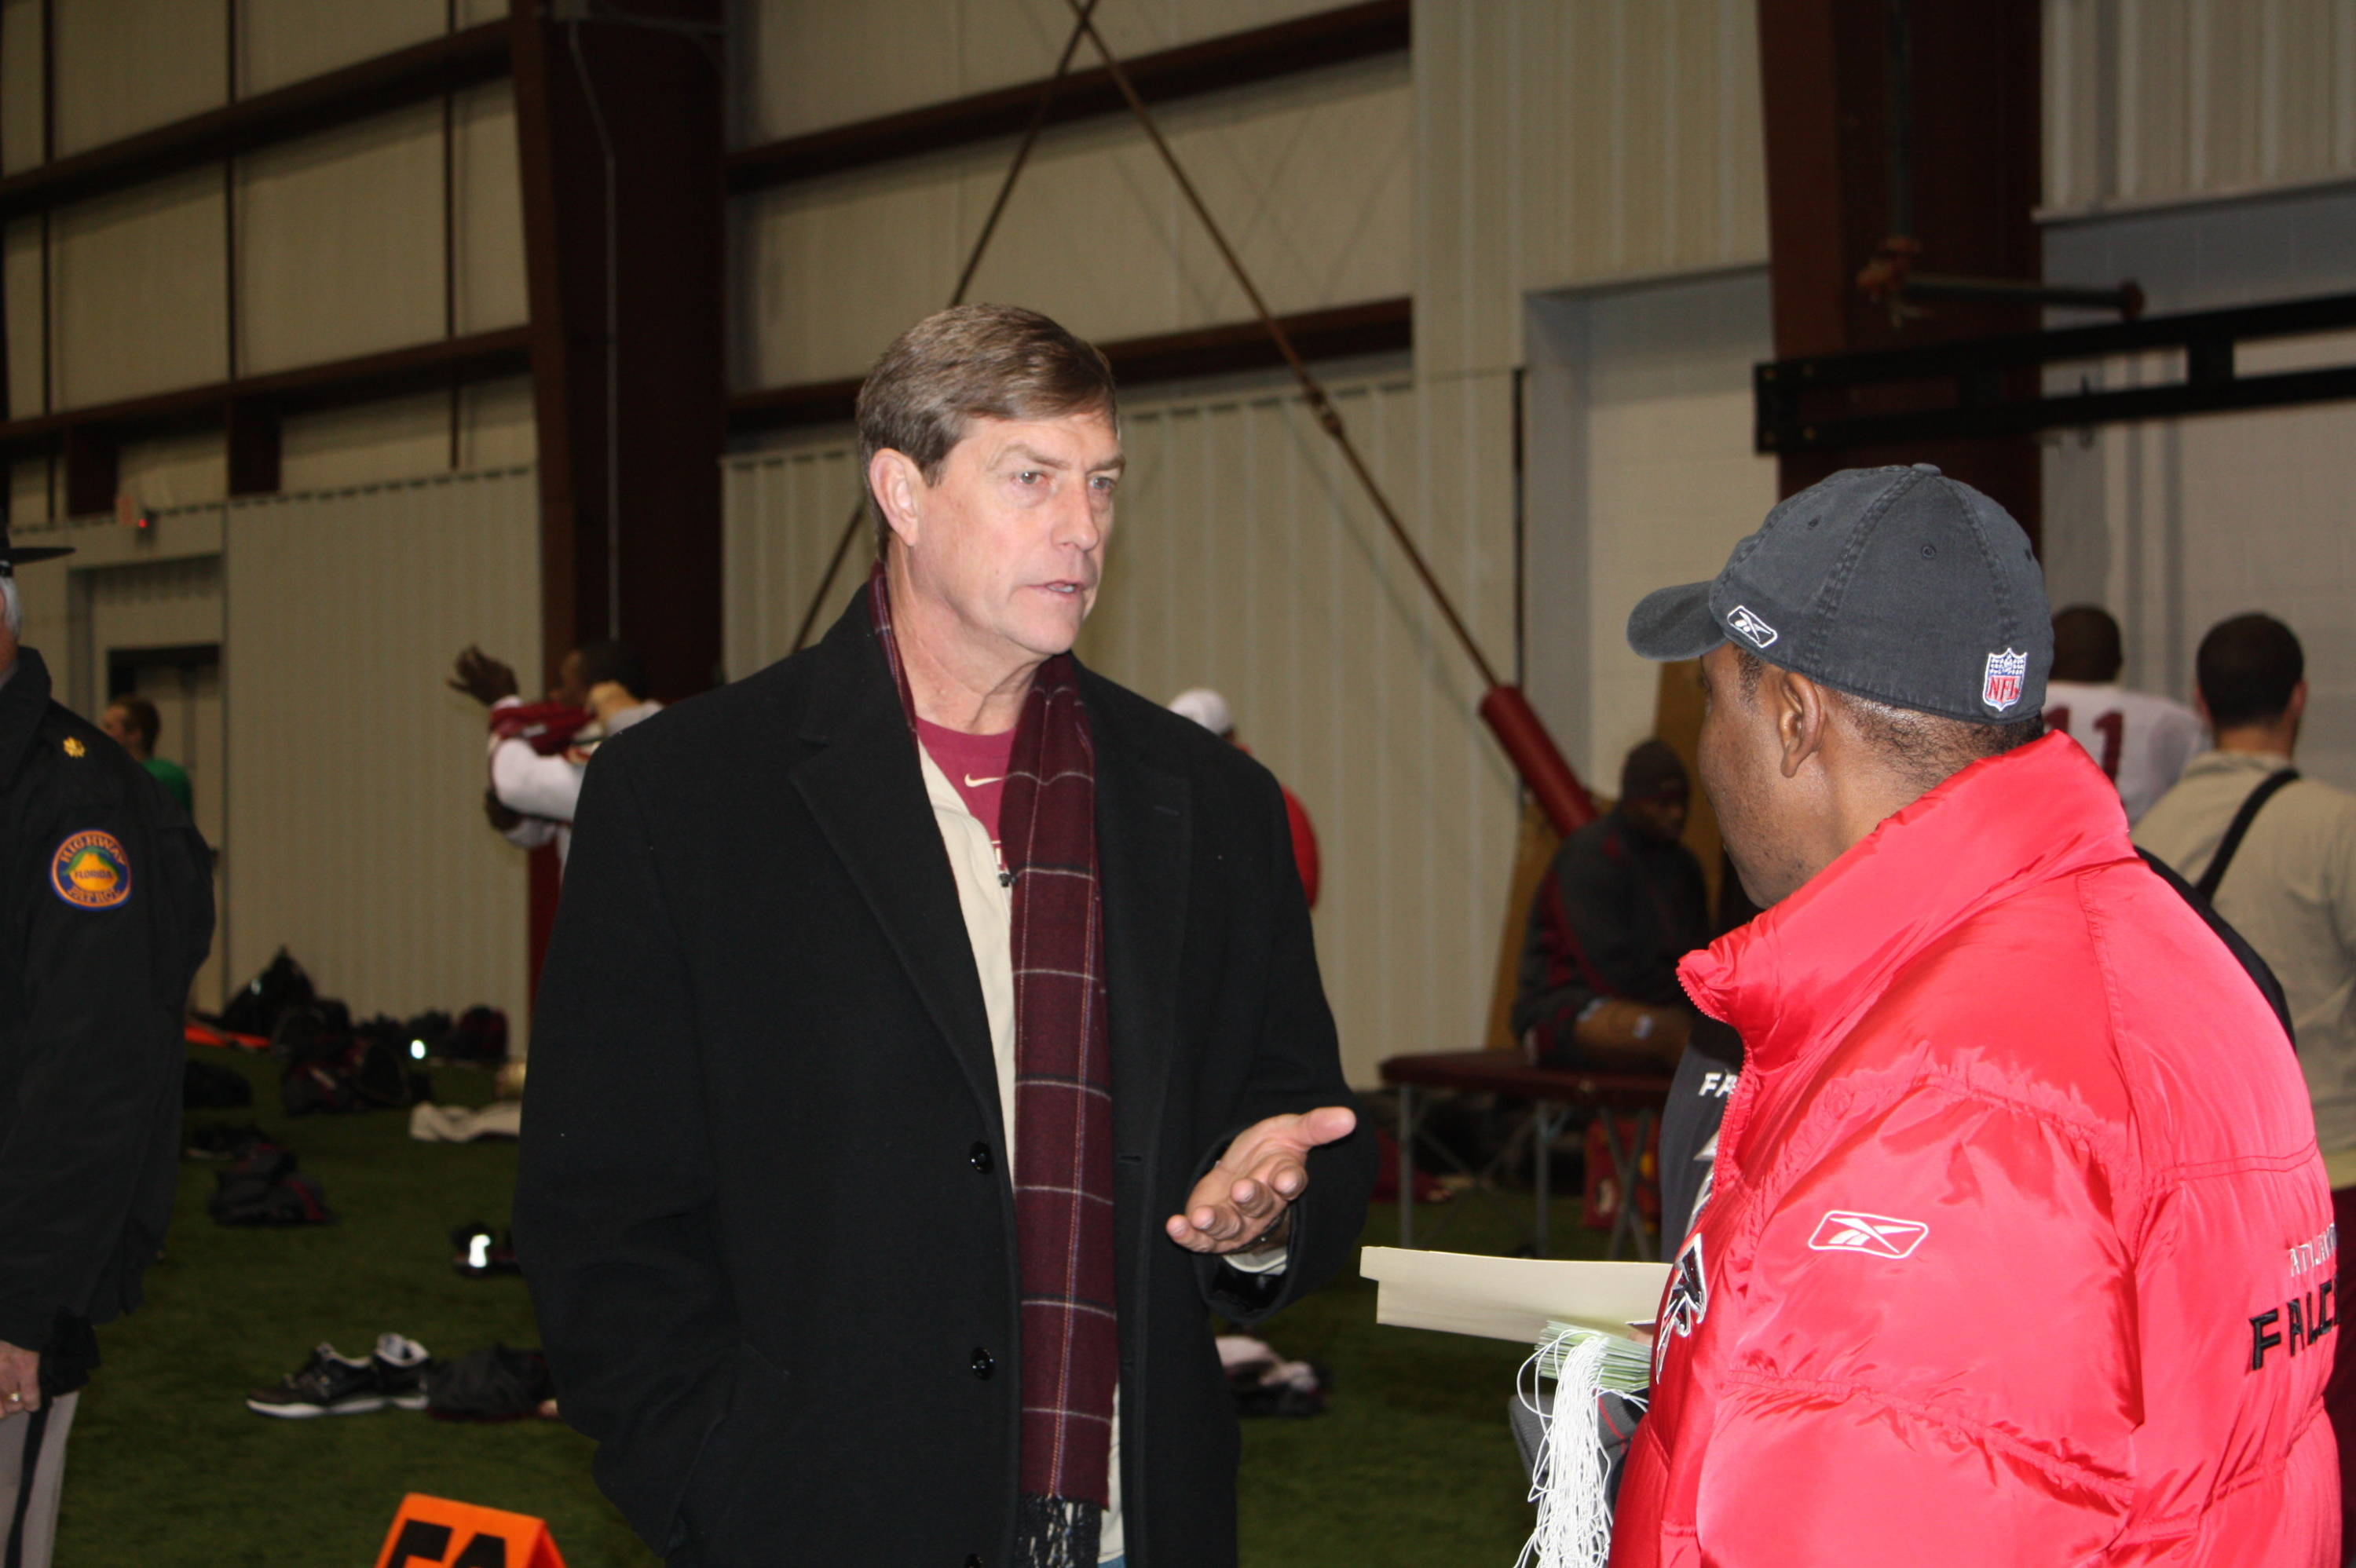 FSU Director of Athletics Randy Spetman talks to a member of the Atlanta Falcons staff.